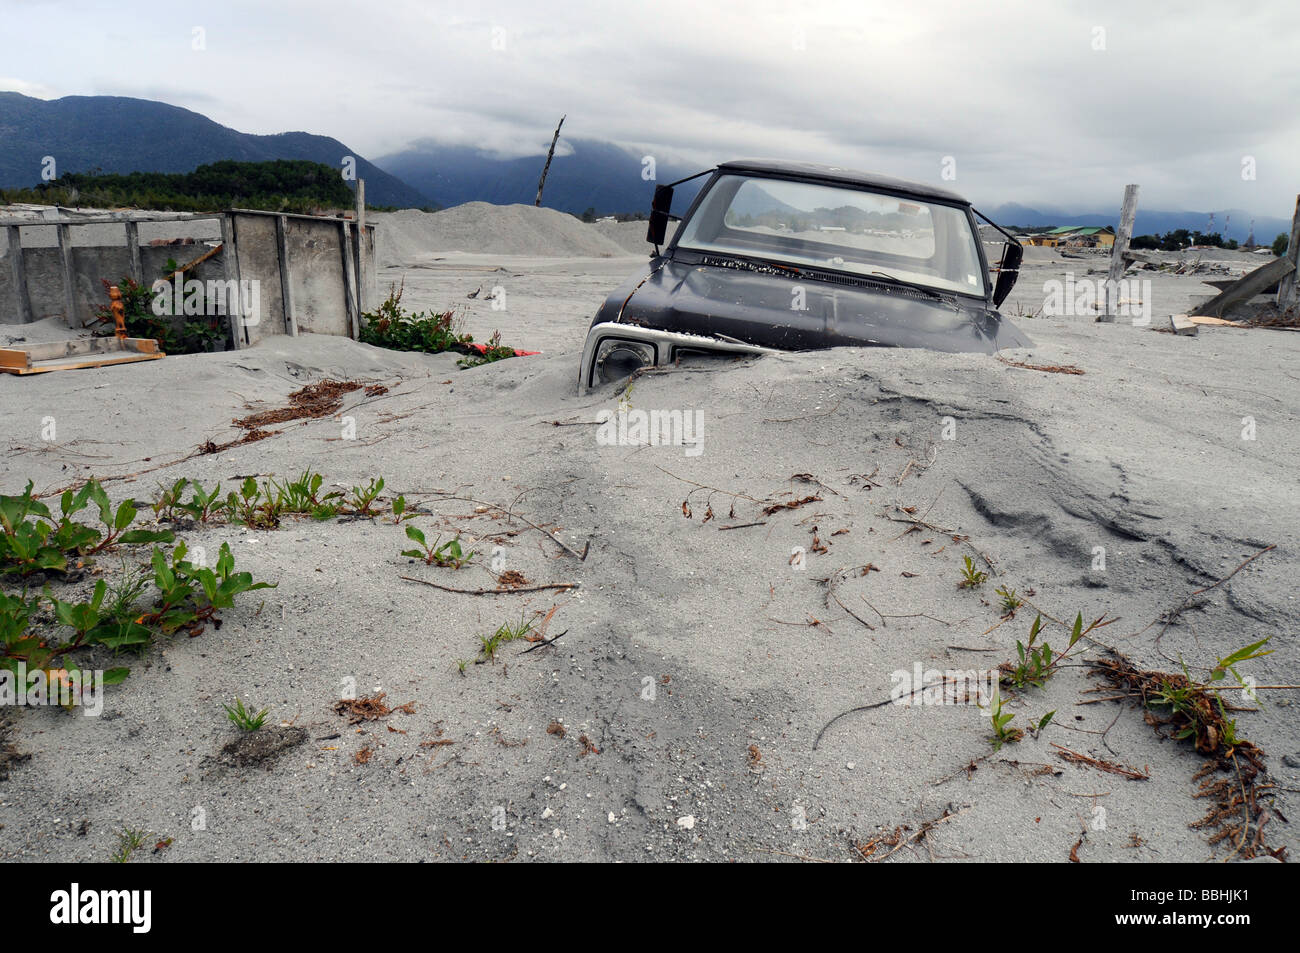 A buried car in the destroyed town of Chaiten after the volcanic eruption Stock Photo